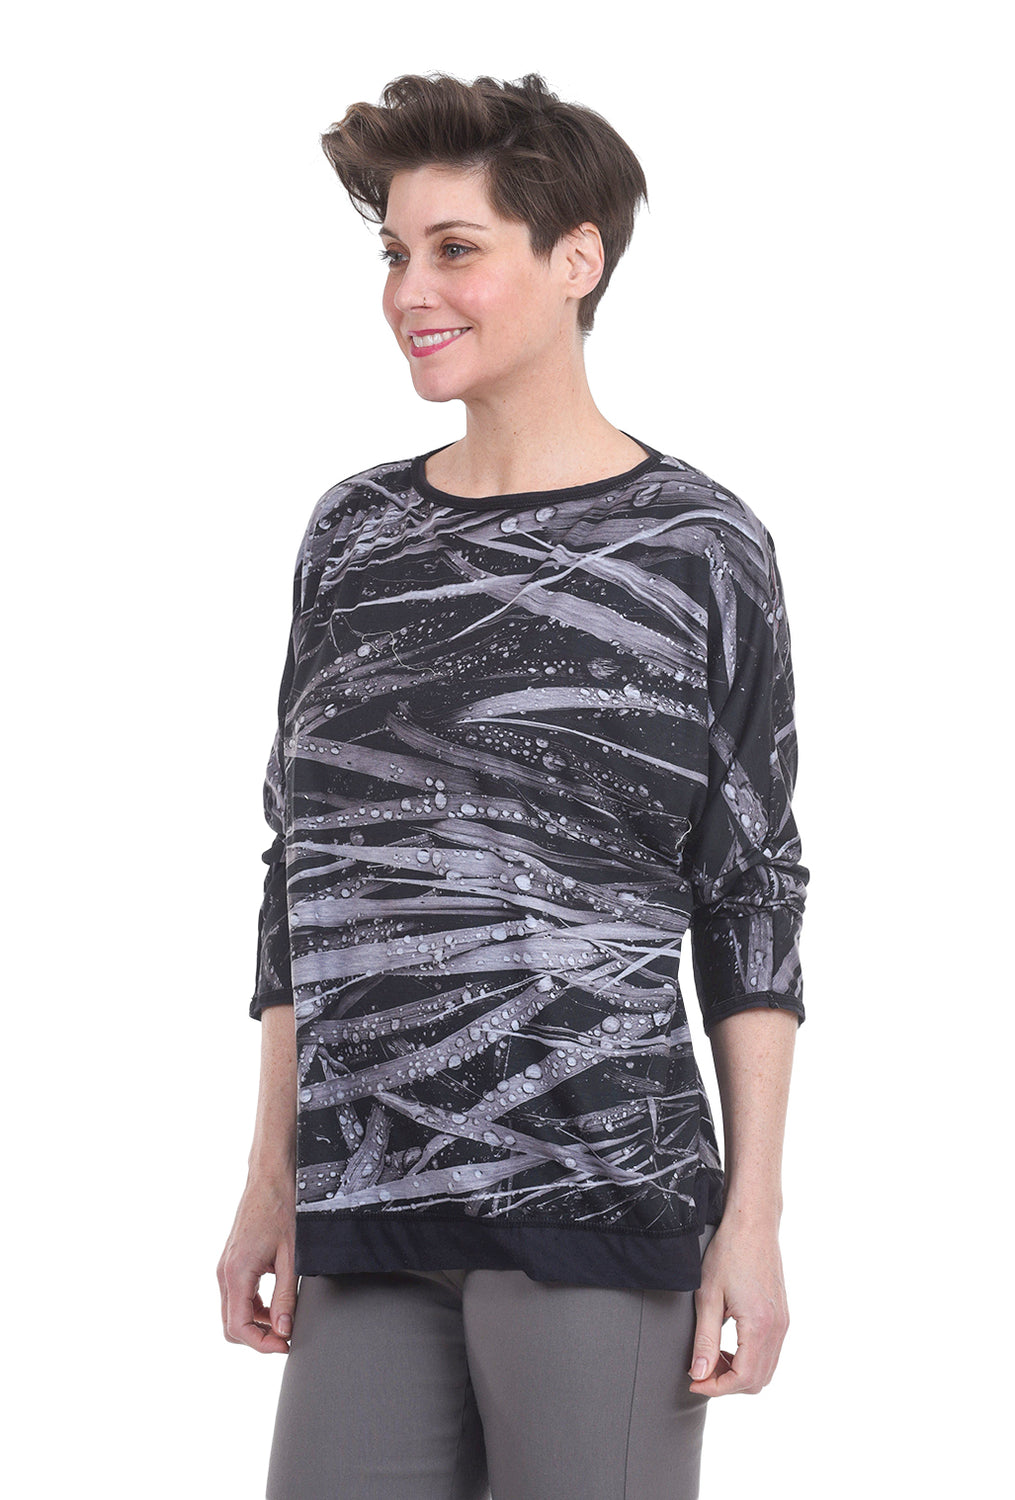 Cynthia Ashby Grass Graphic Top, Black